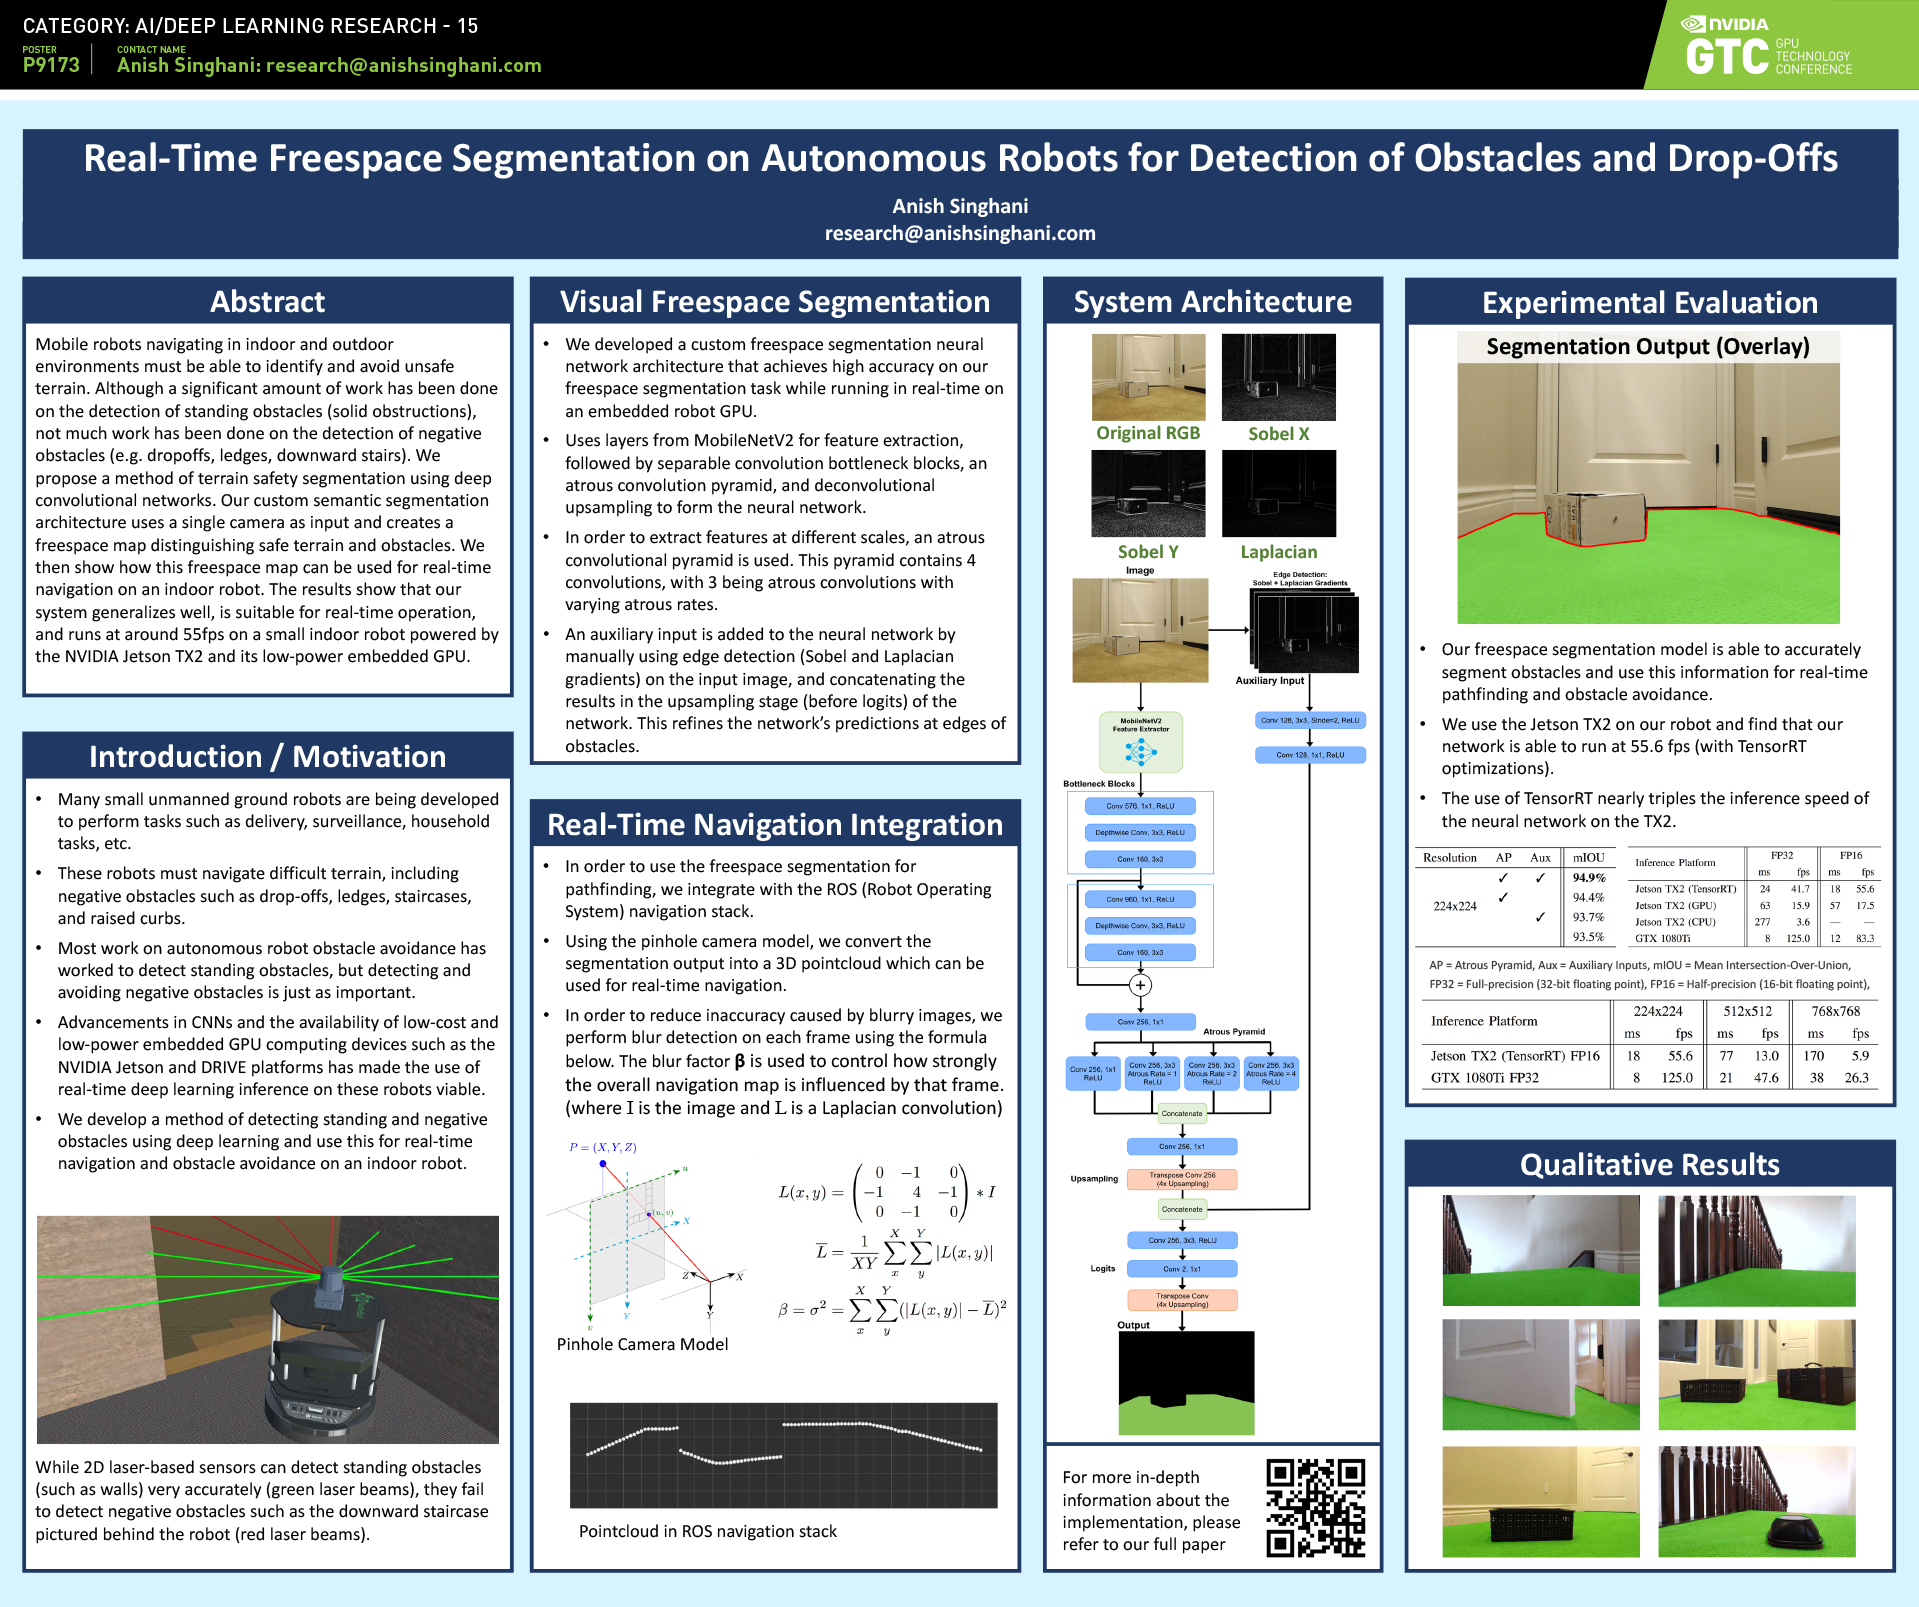 AI and Deep Learning Conference Posters | NVIDIA GTC 2019